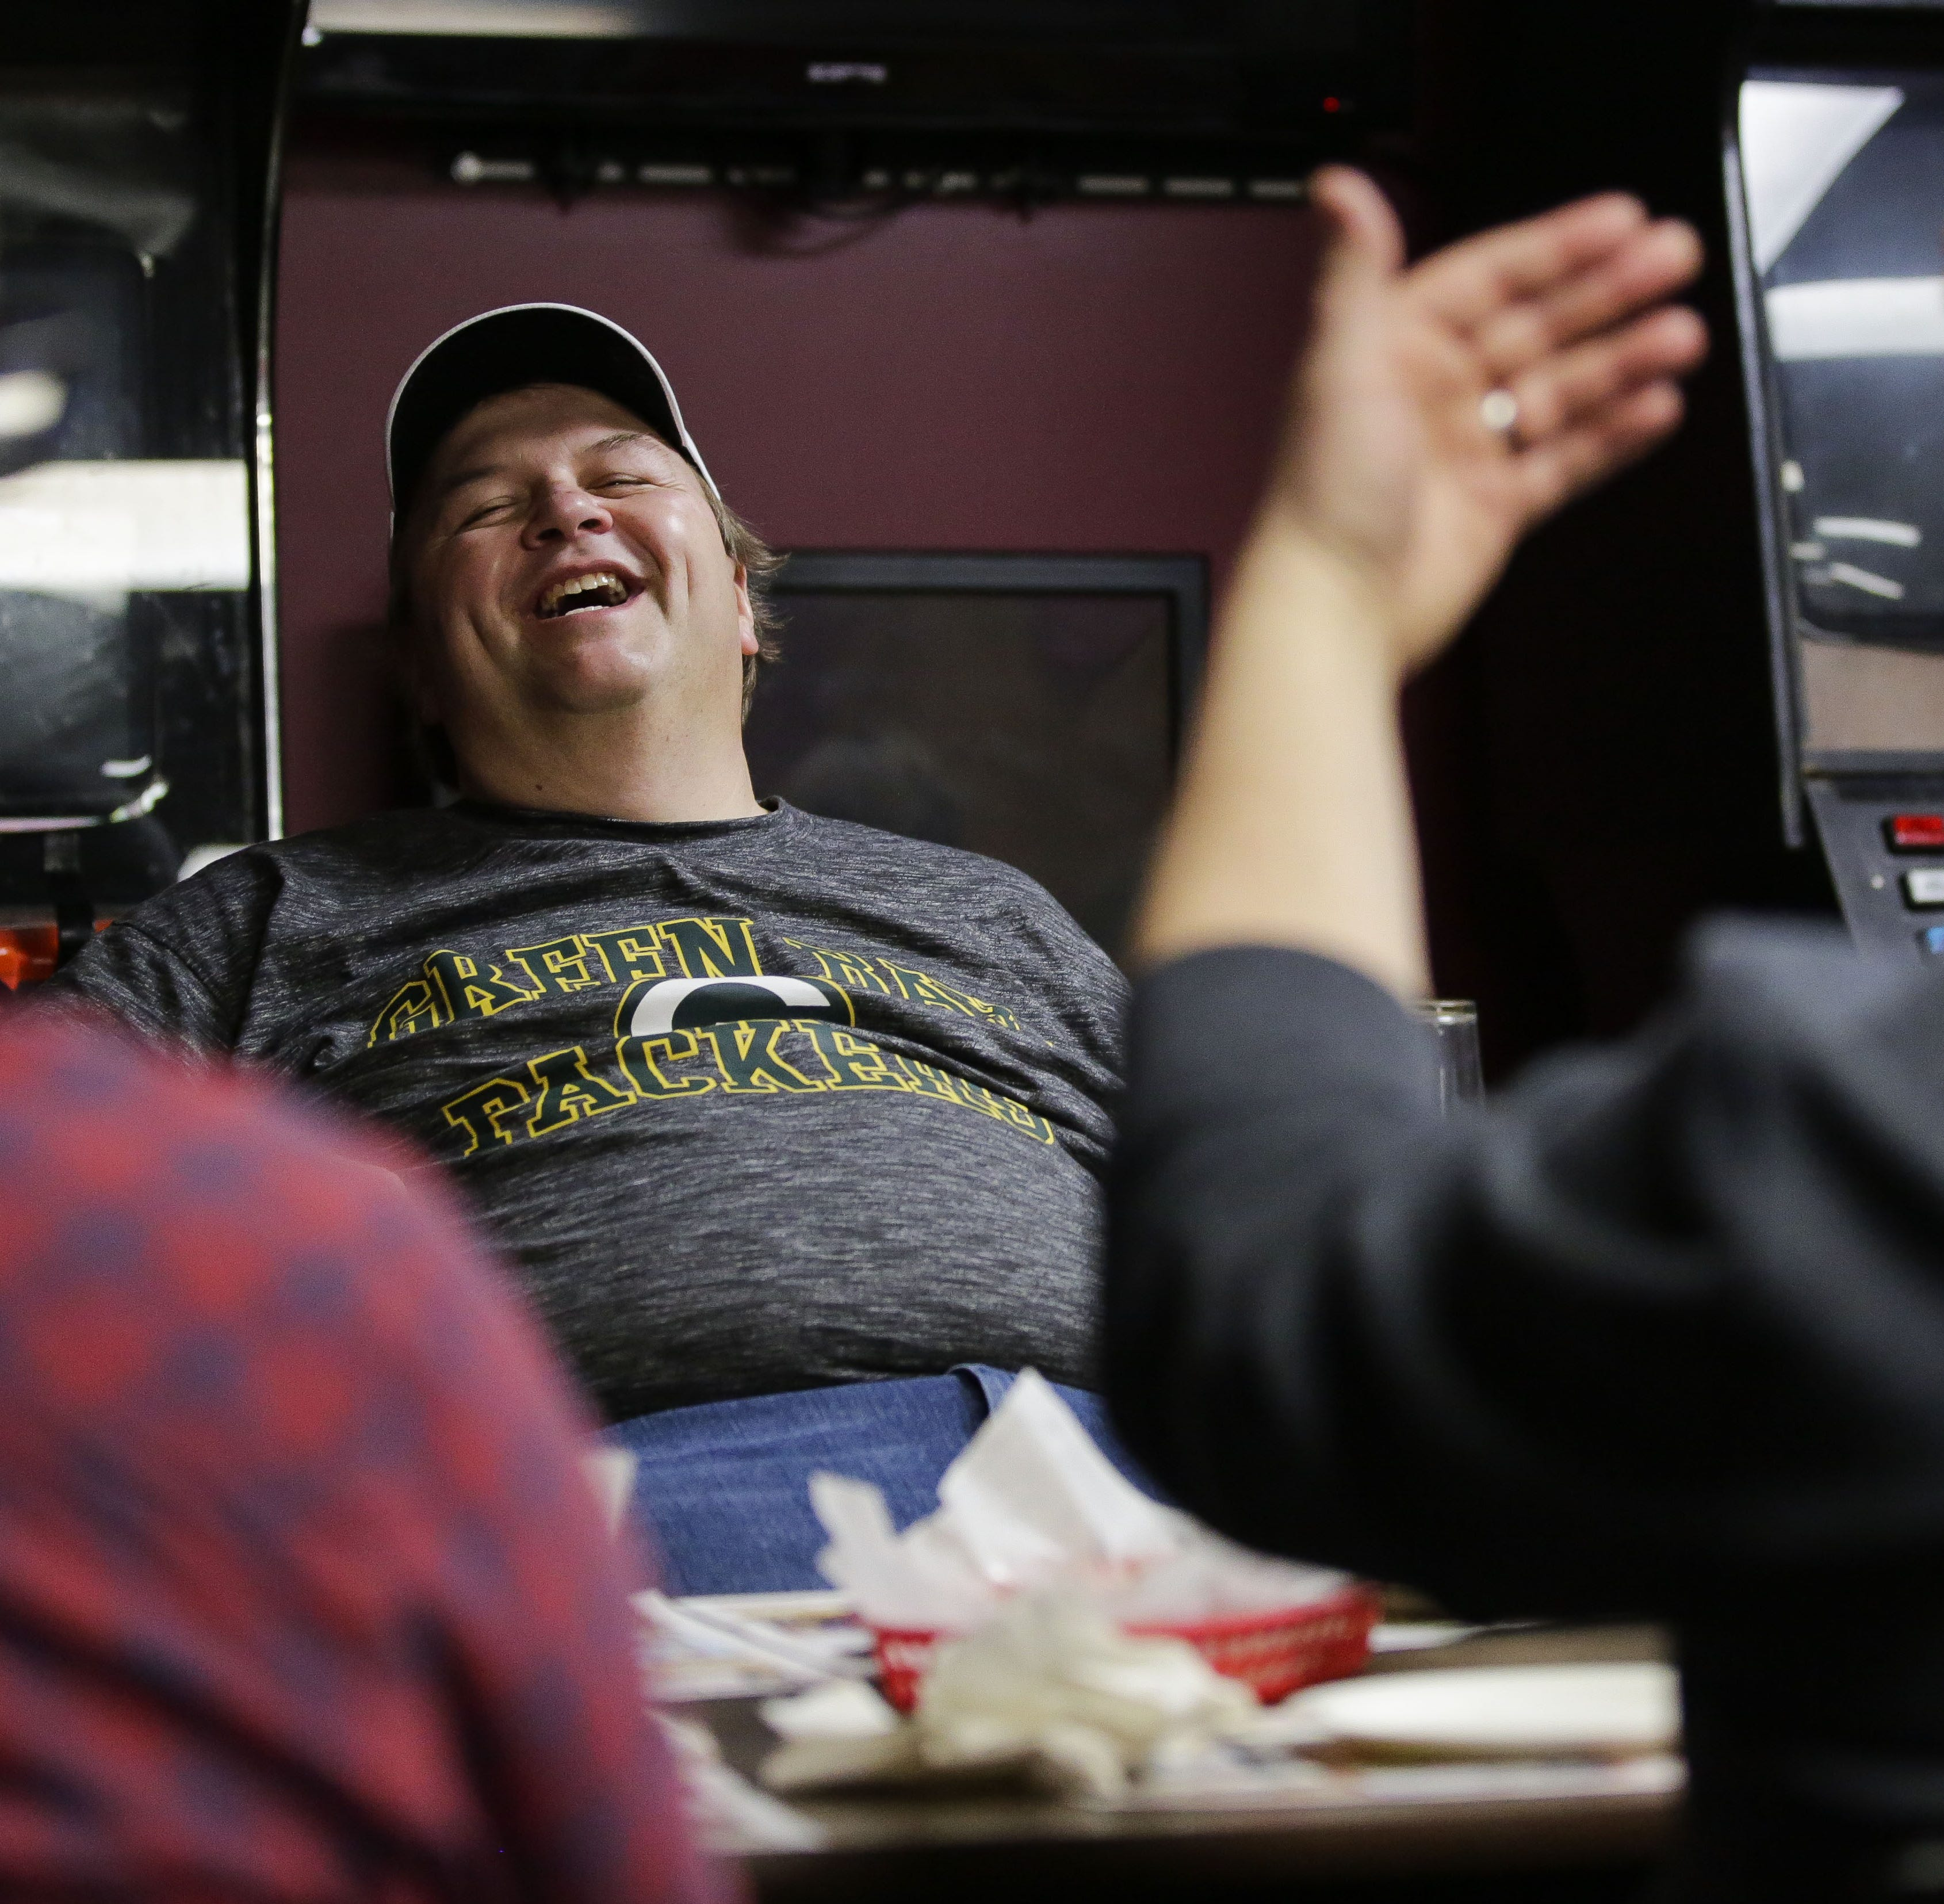 A slice above the rest: Scotty's Pizza has been fixture in Marshfield for over 30 years